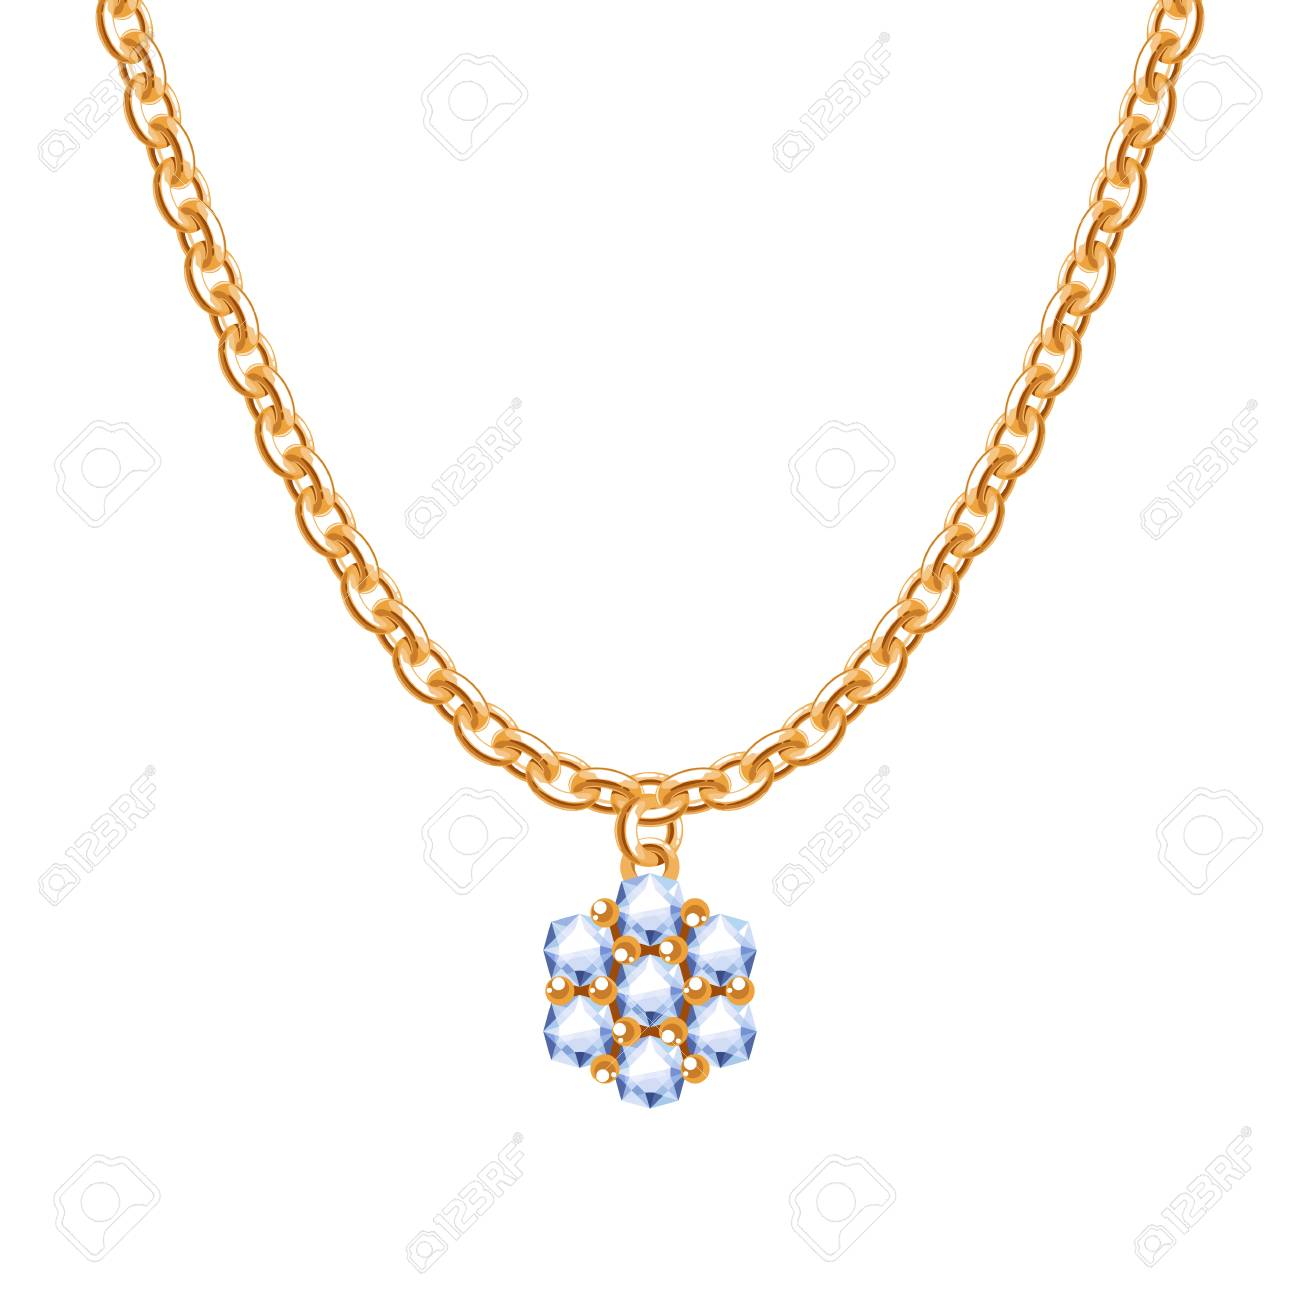 Golden Chain Necklace With Diamond Flower Pendant Royalty Free